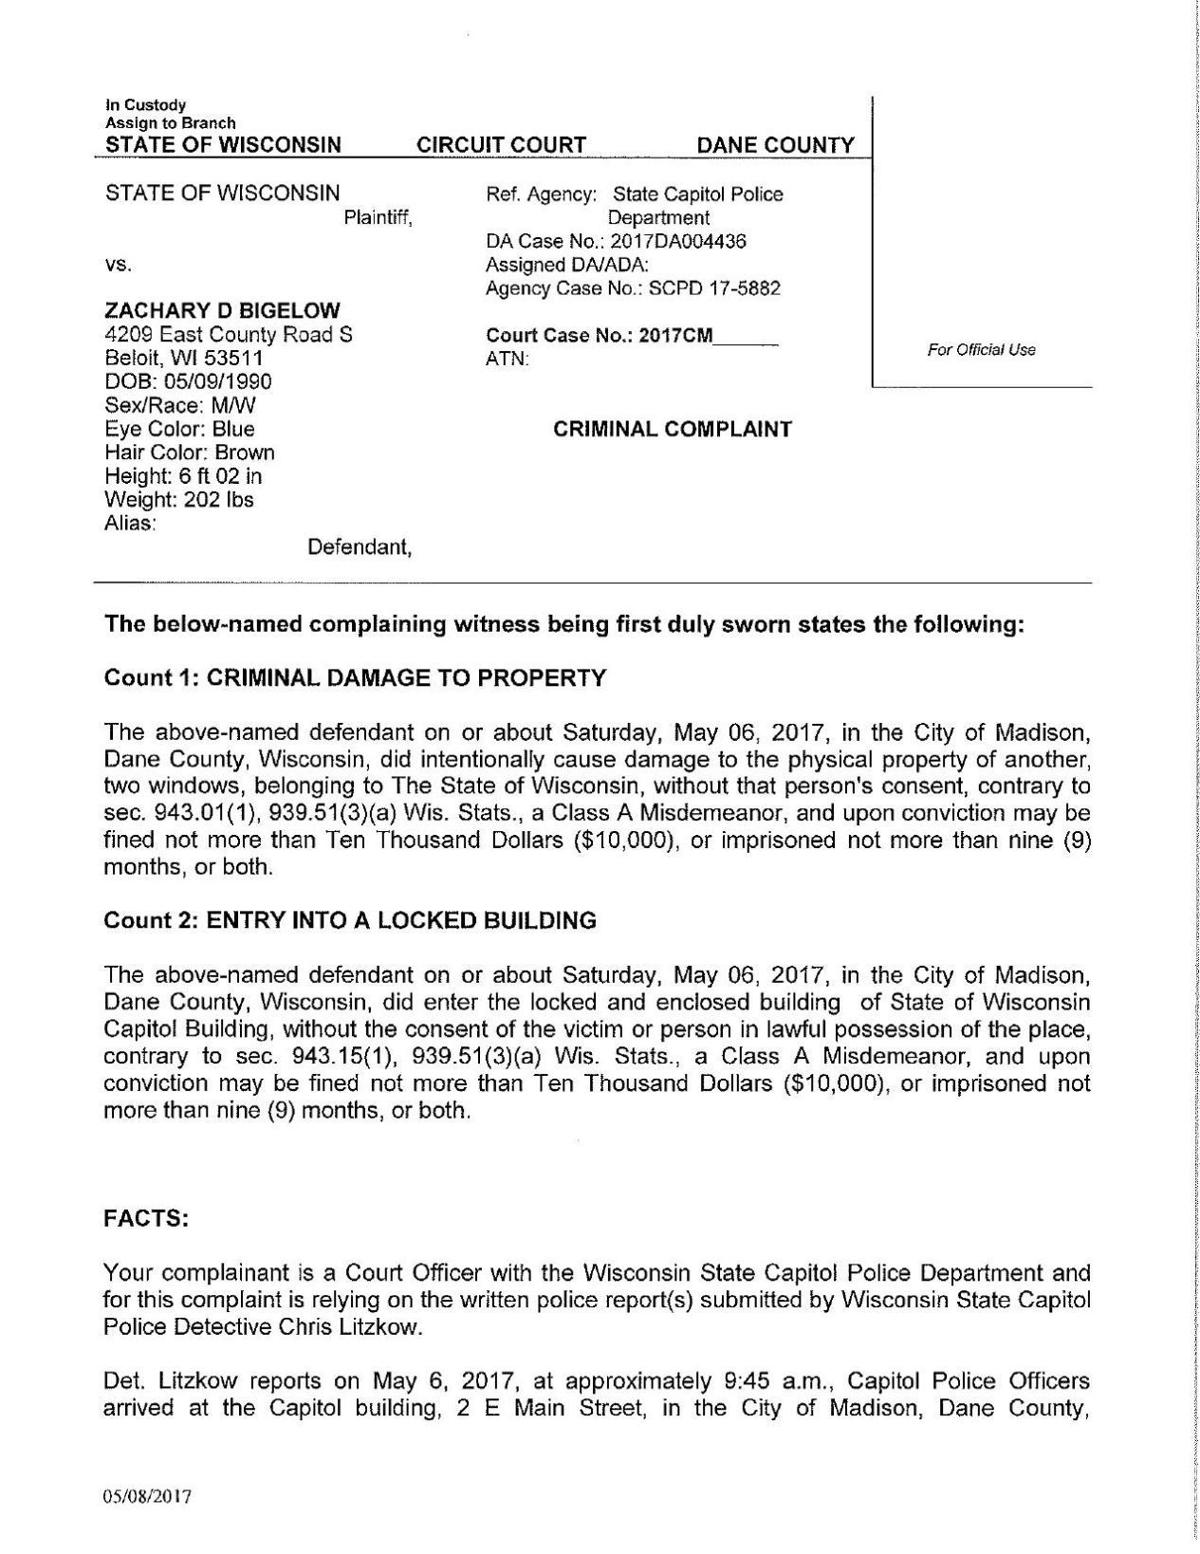 Zachary Bigelow criminal complaint | State and Regional